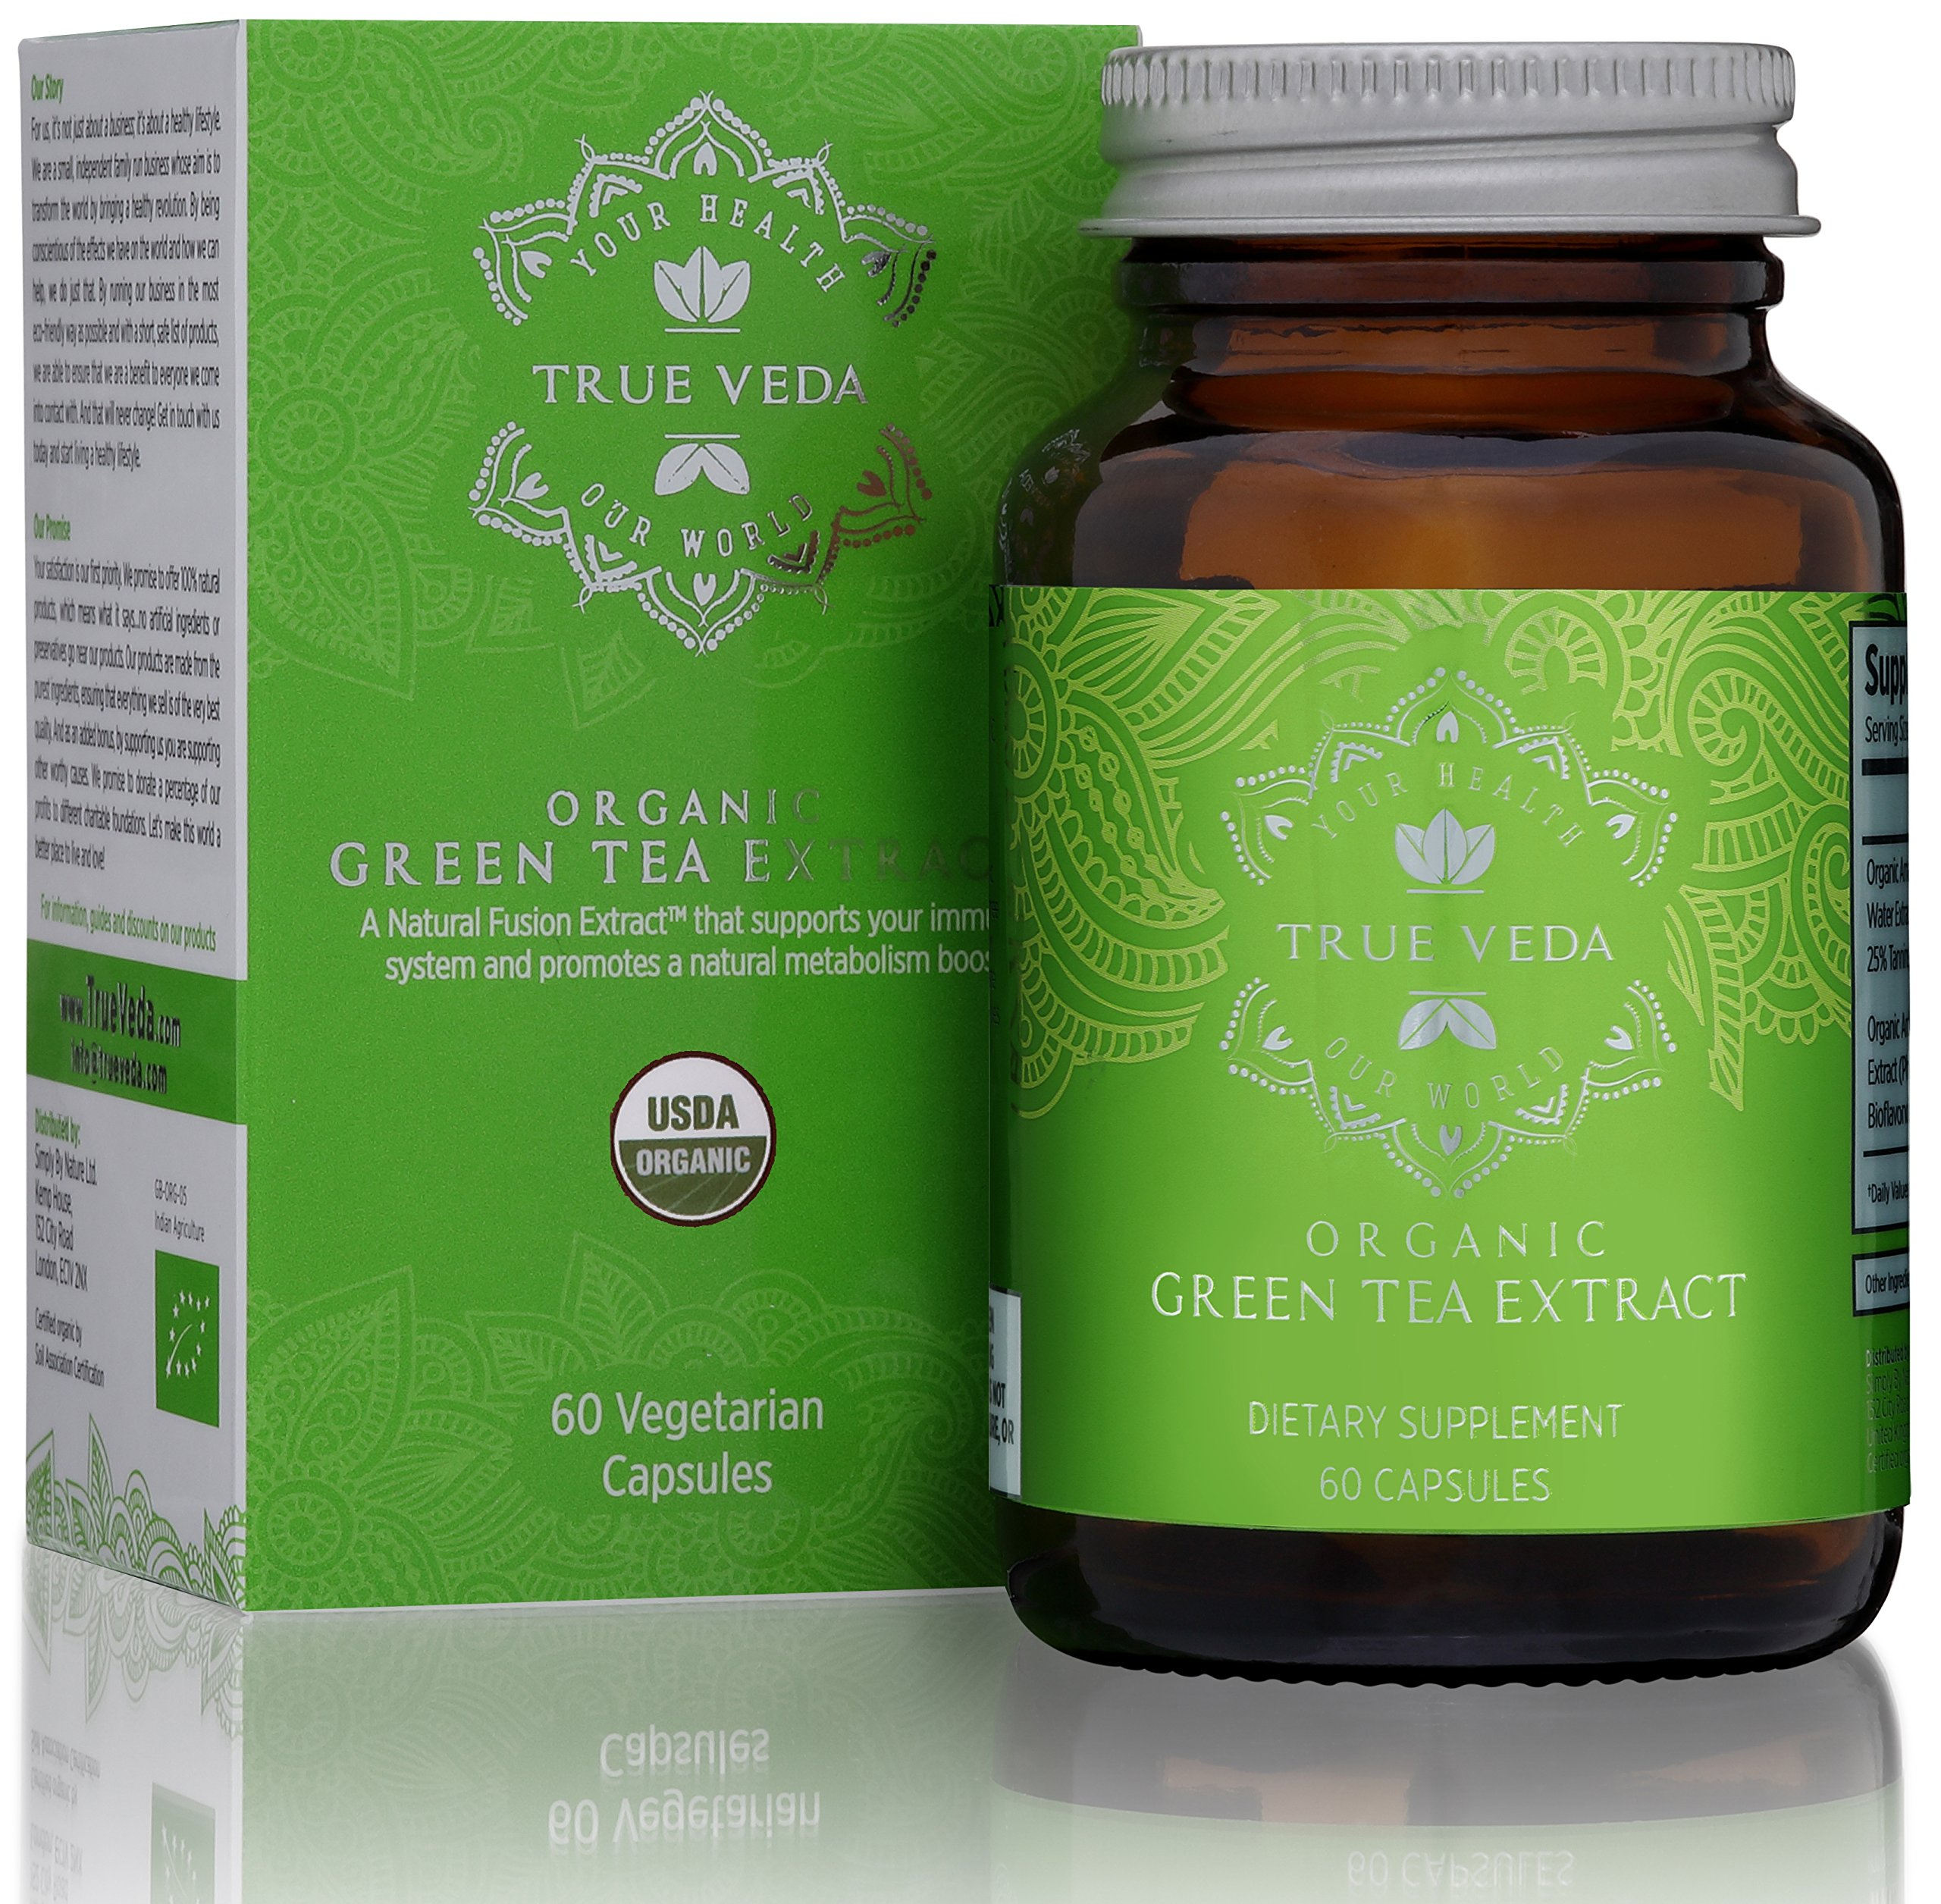 Organic Green Tea Extract Capsules – USDA Organic Certified   60 Green Tea Pills   High EGCG   Promote Natural Weight Loss Supplement   Metabolism Booster   Low Caffeine Source for Gentle Energy